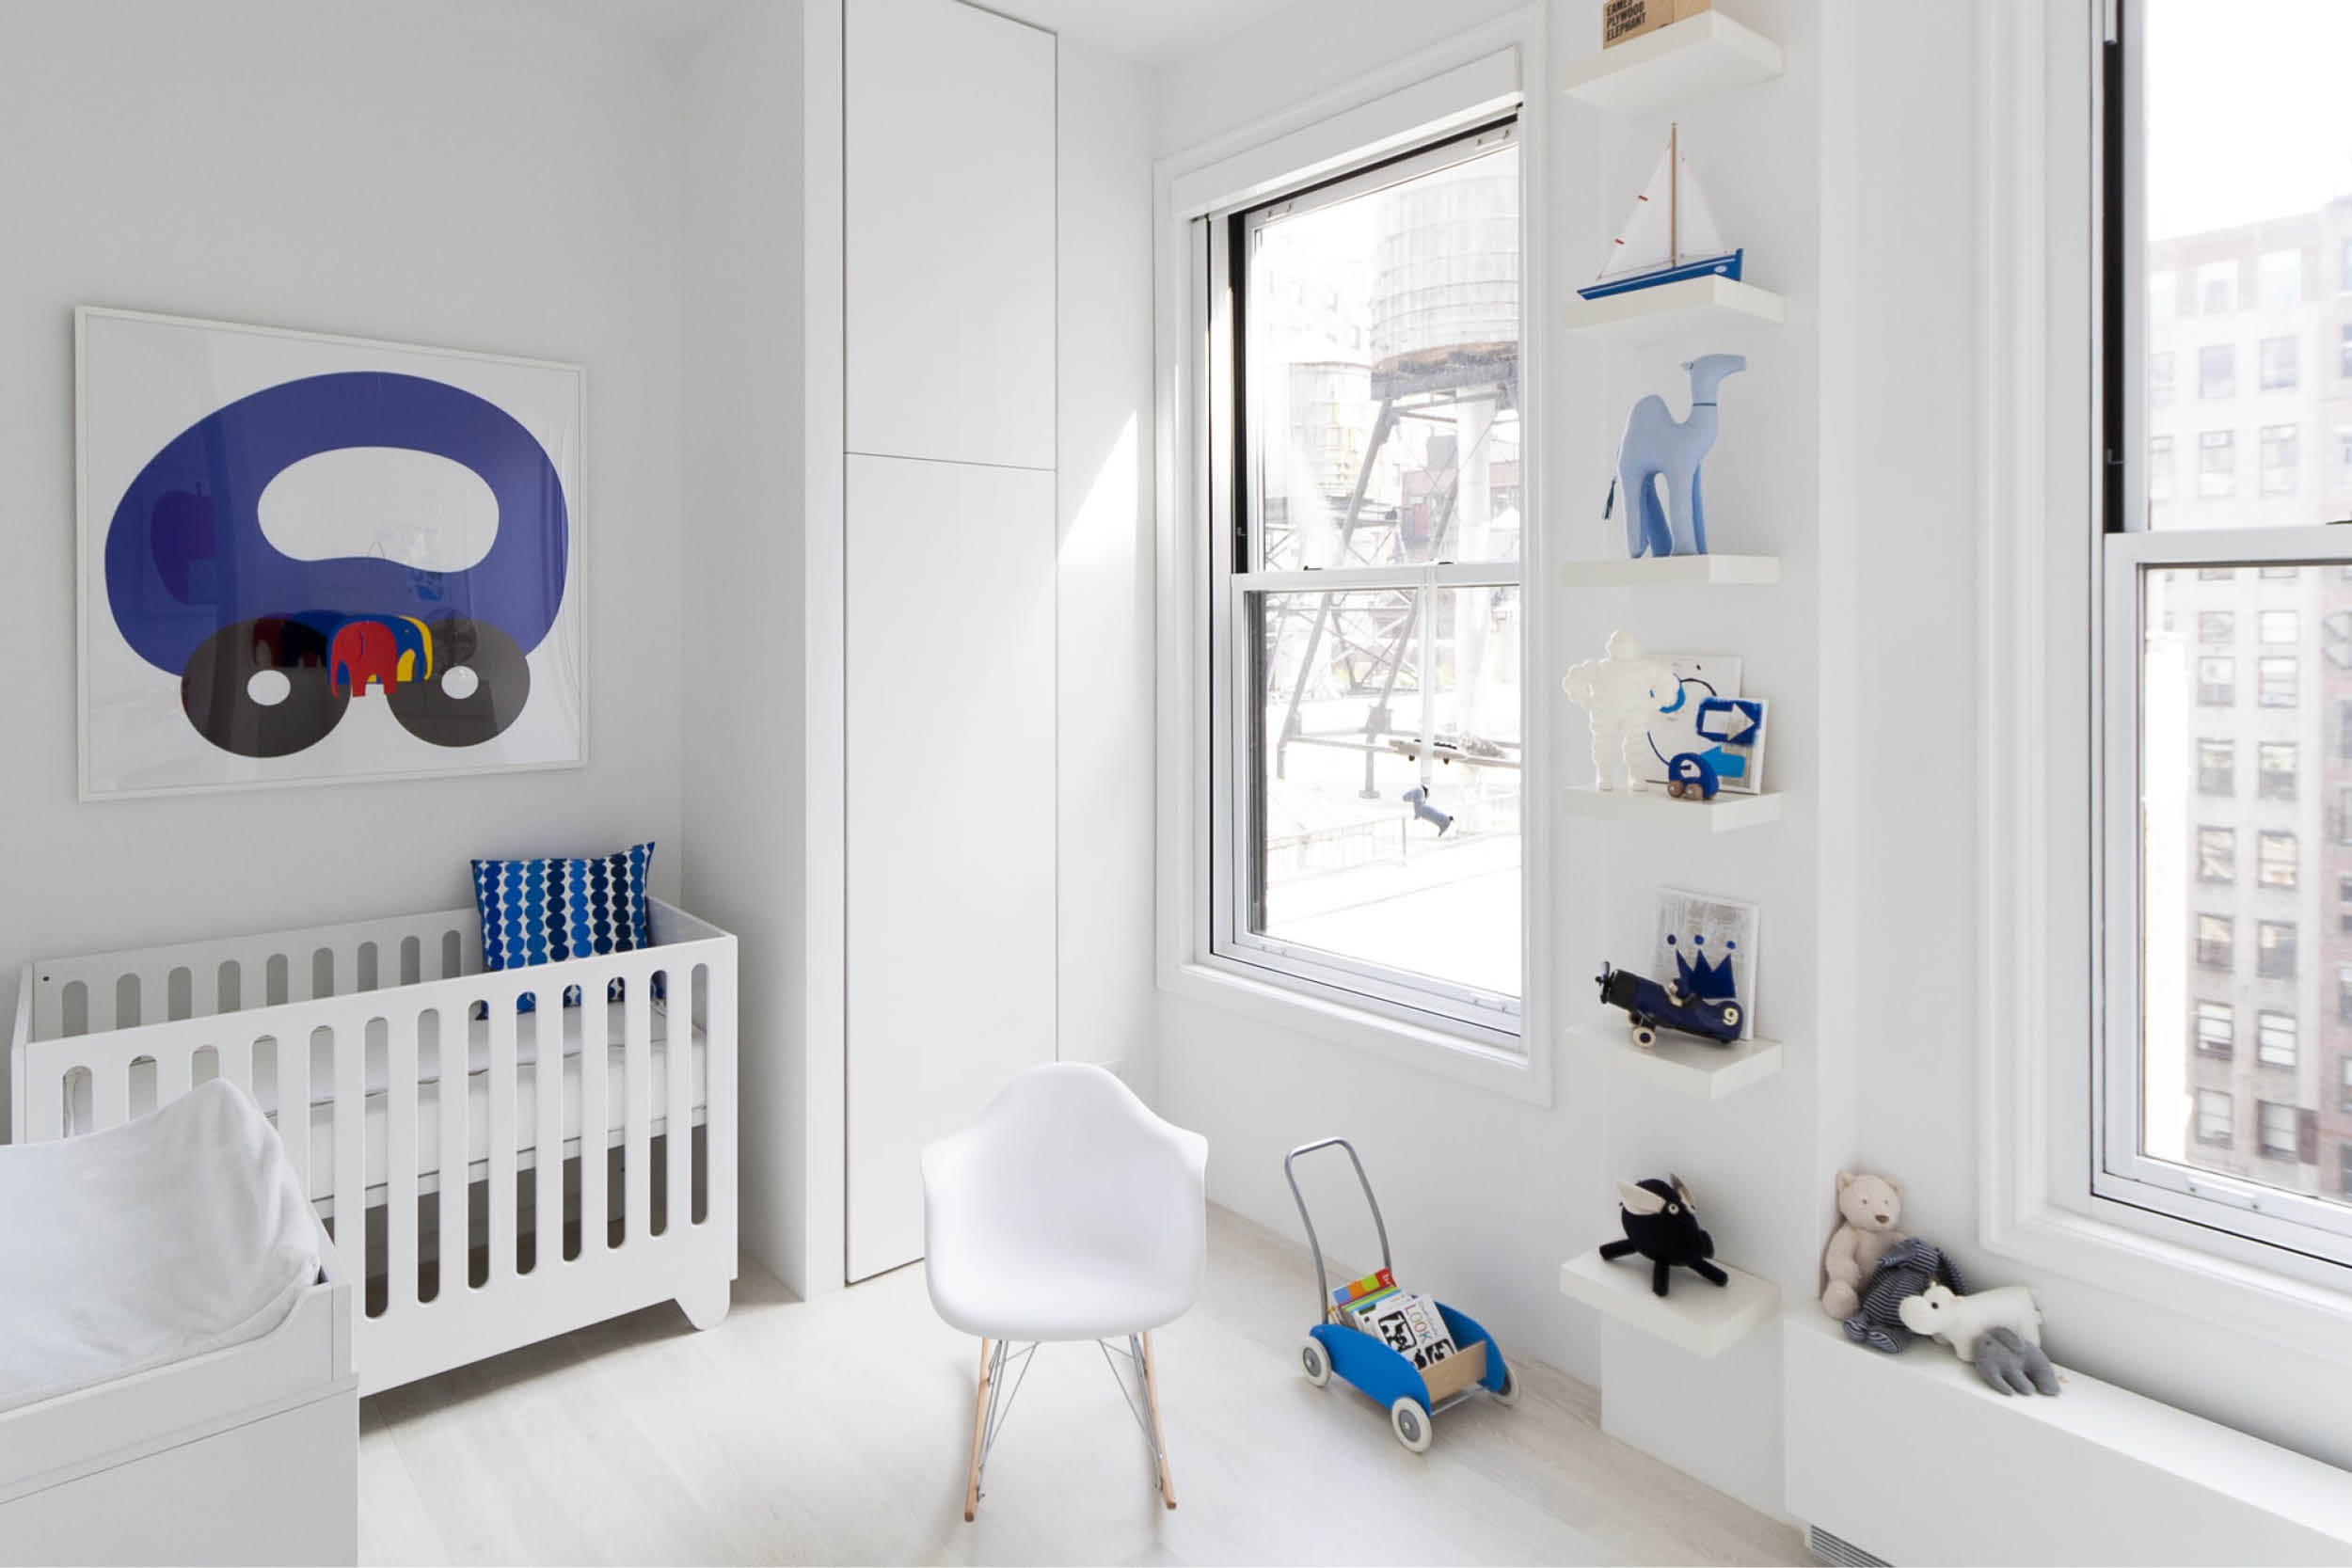 Modern New York City Union Square Loft Renovation | White Kids Bedroom Bright Art | RES4